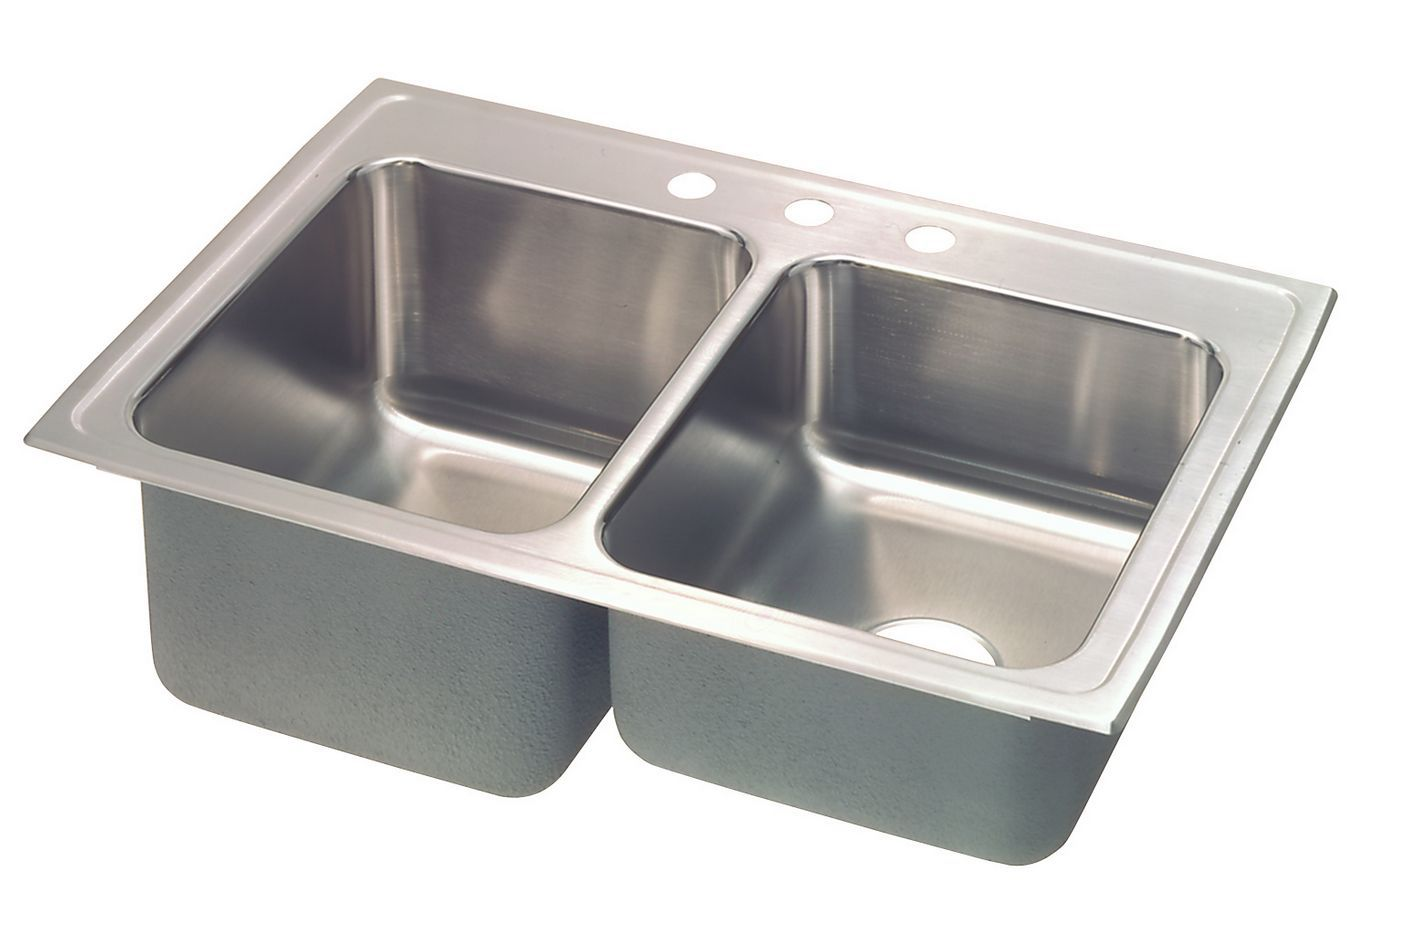 Franke stainless steel double-basin sink against a white background.